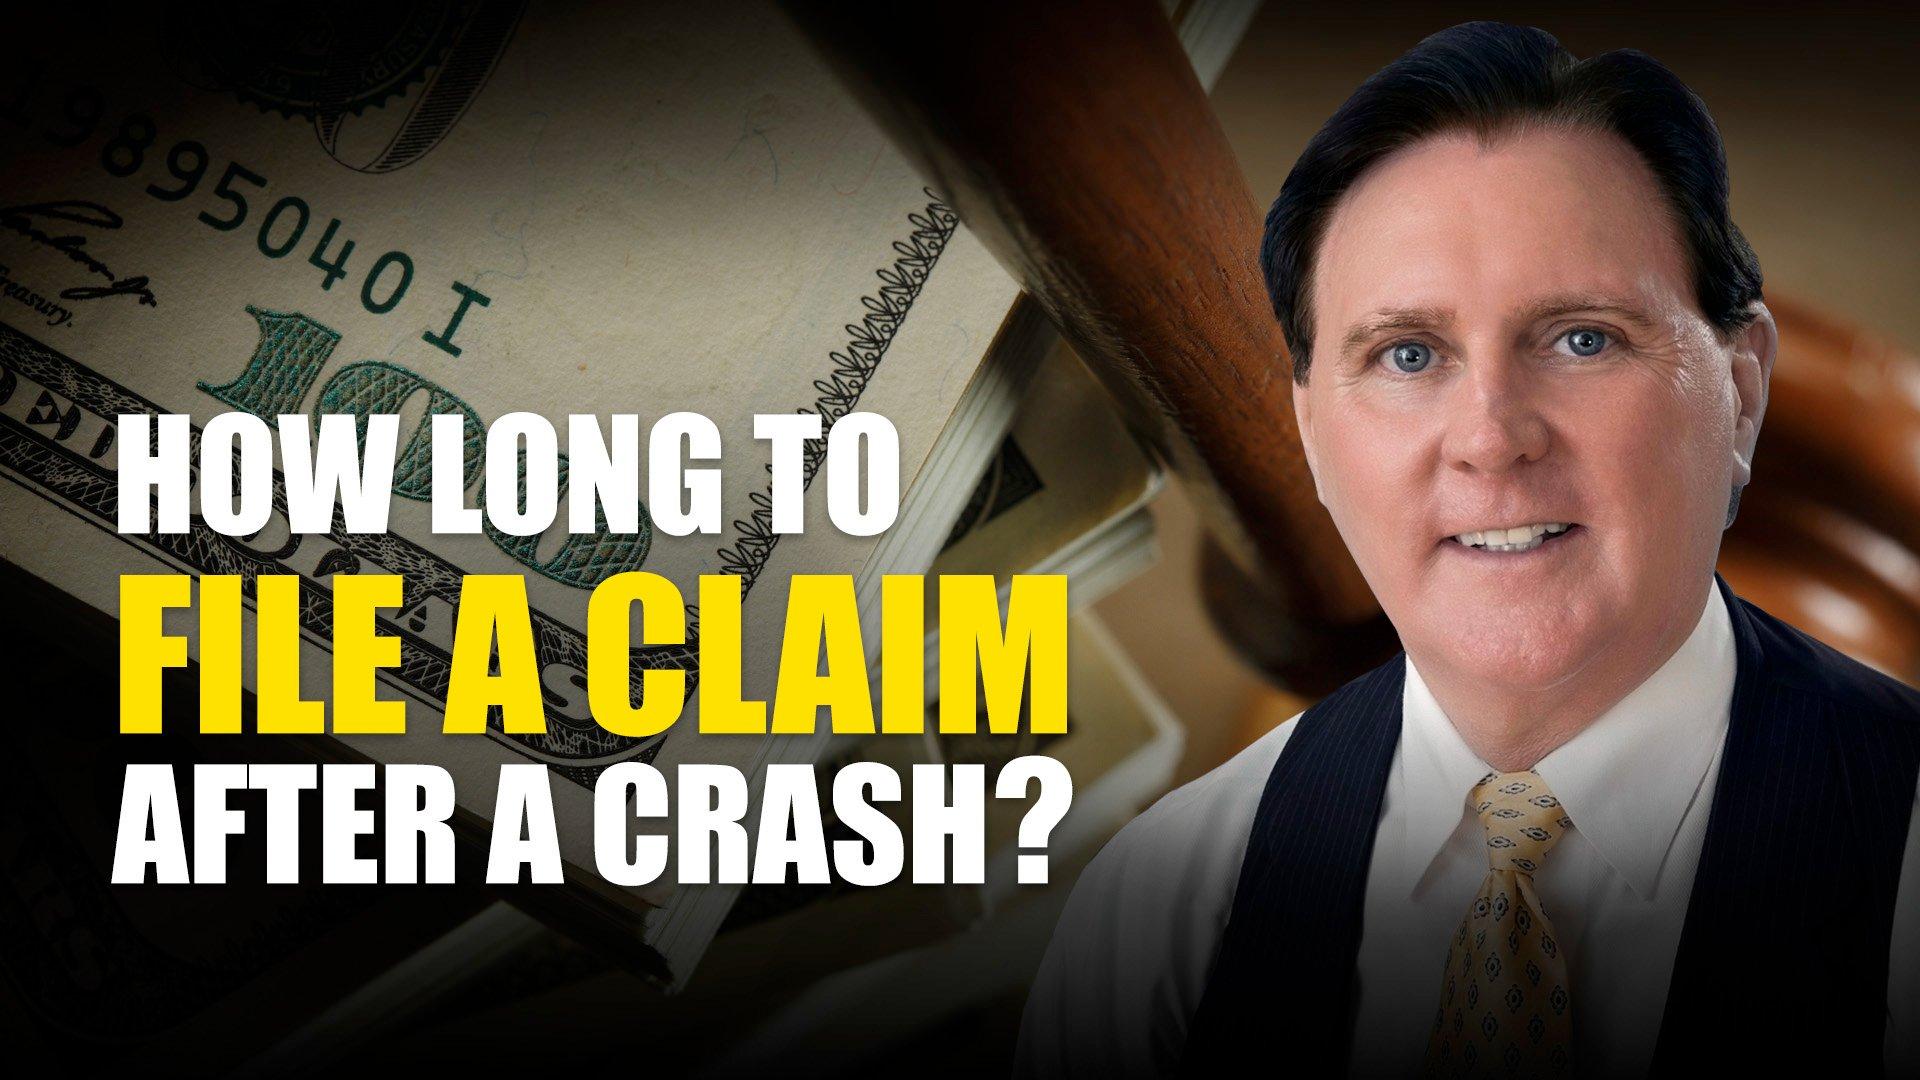 How Long To File A Claim After A Crash?